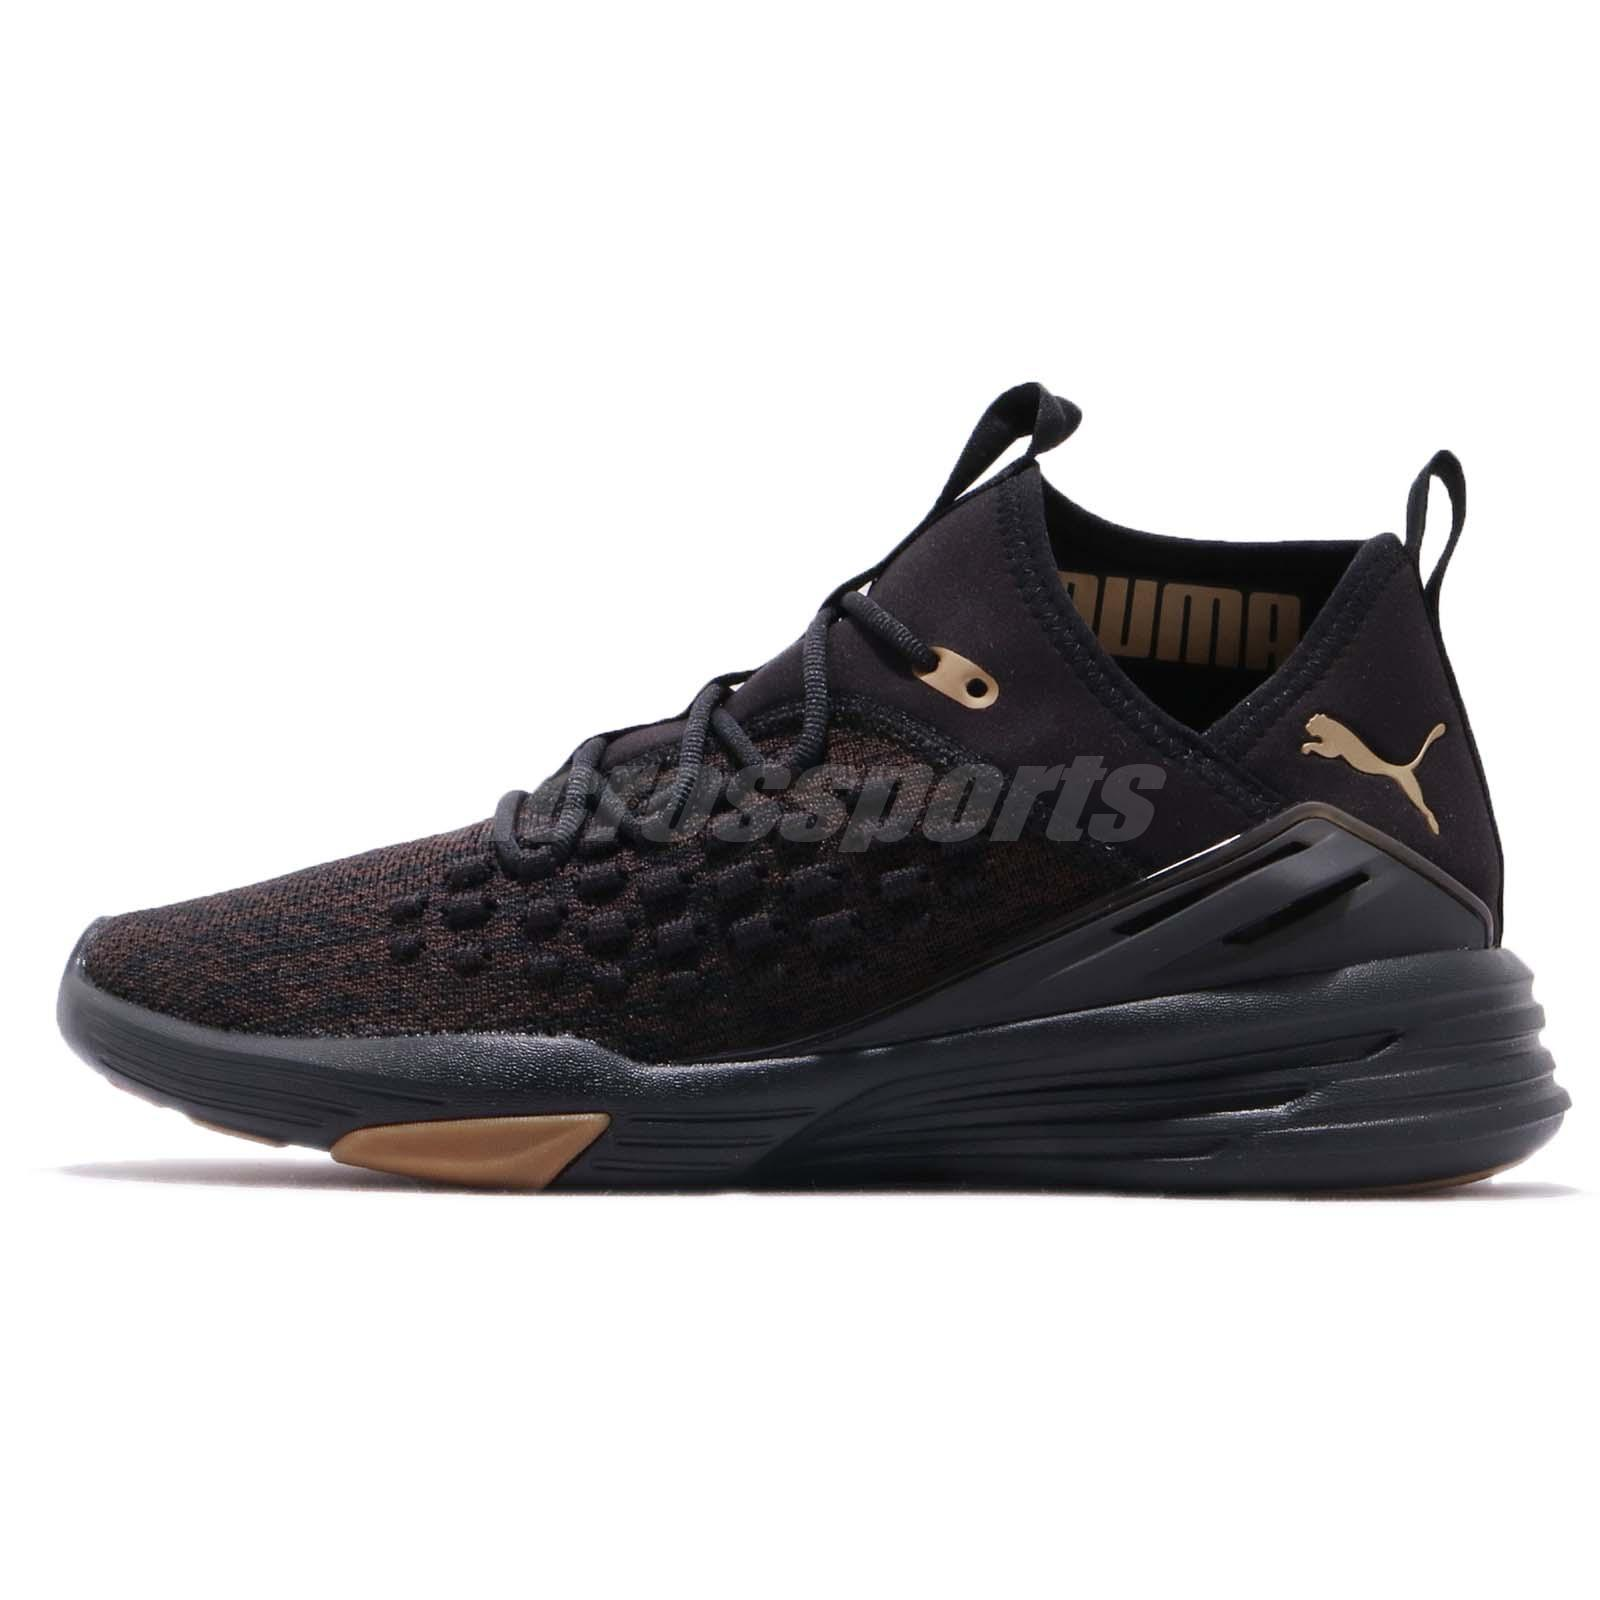 Details about Puma Mantra Fusefit Desert Black Gold Men Running Shoes Sneakers 191576 01